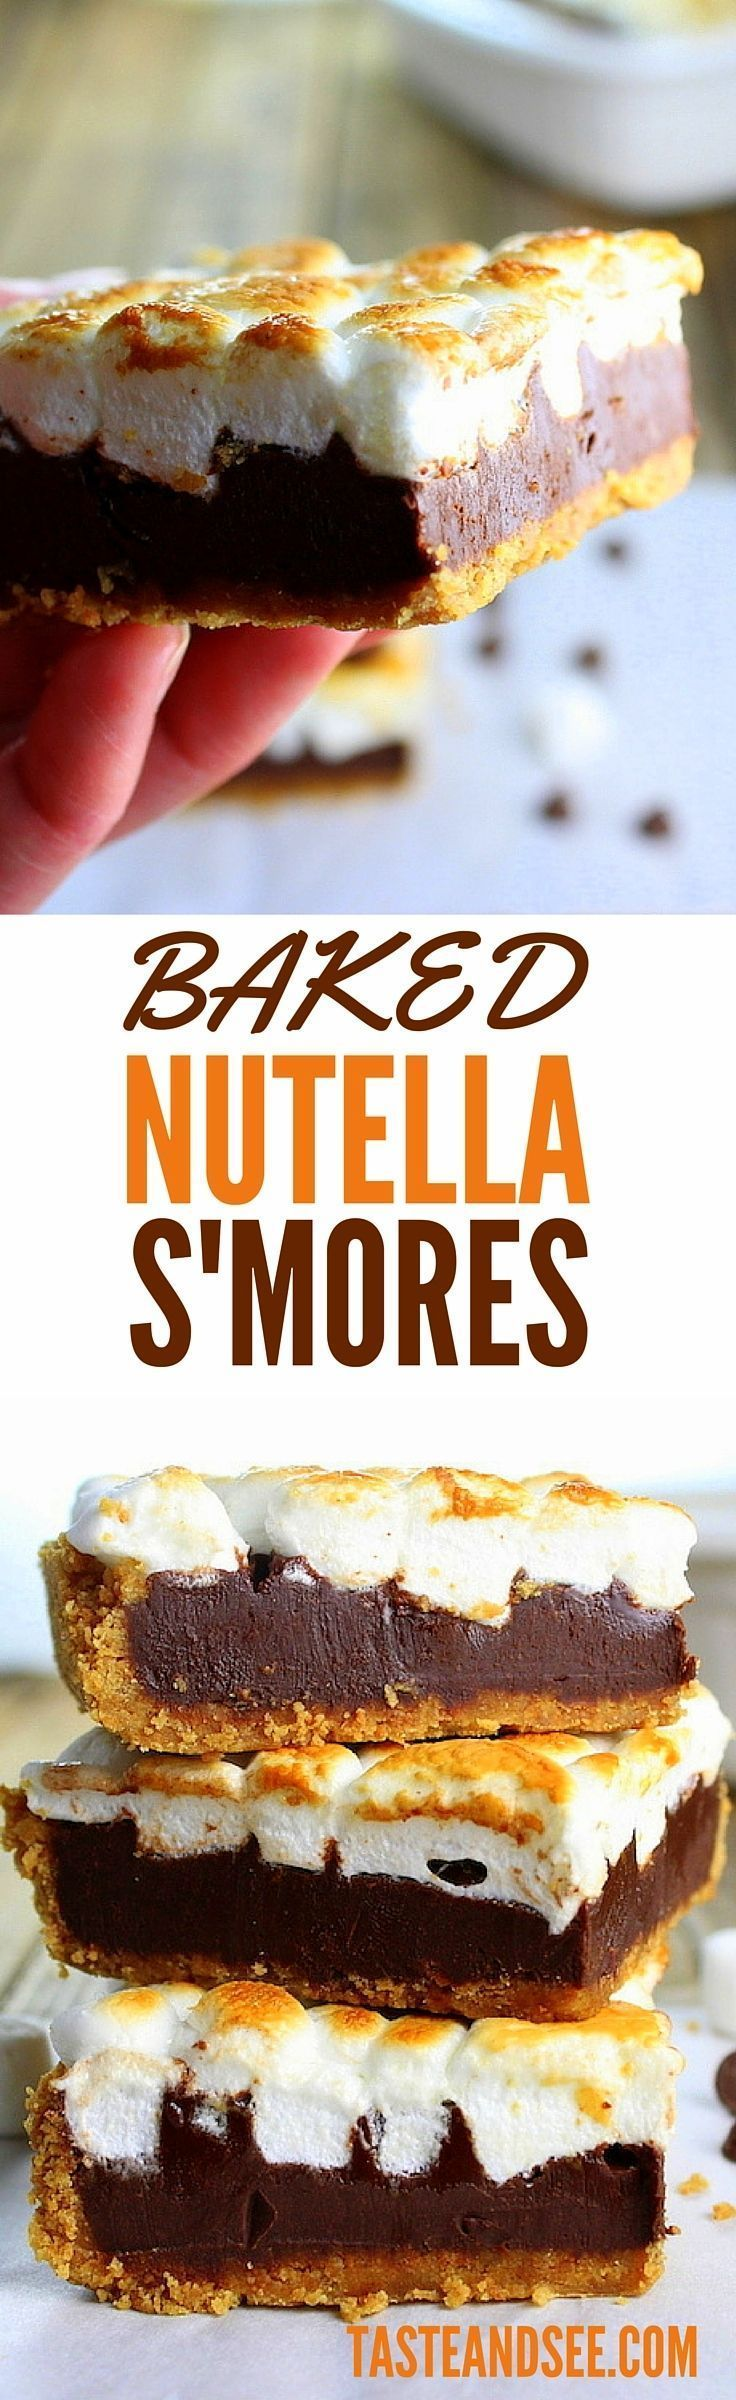 Baked Nutella S'mores - A fun and tasty alternative to brownies. Plus, baking…